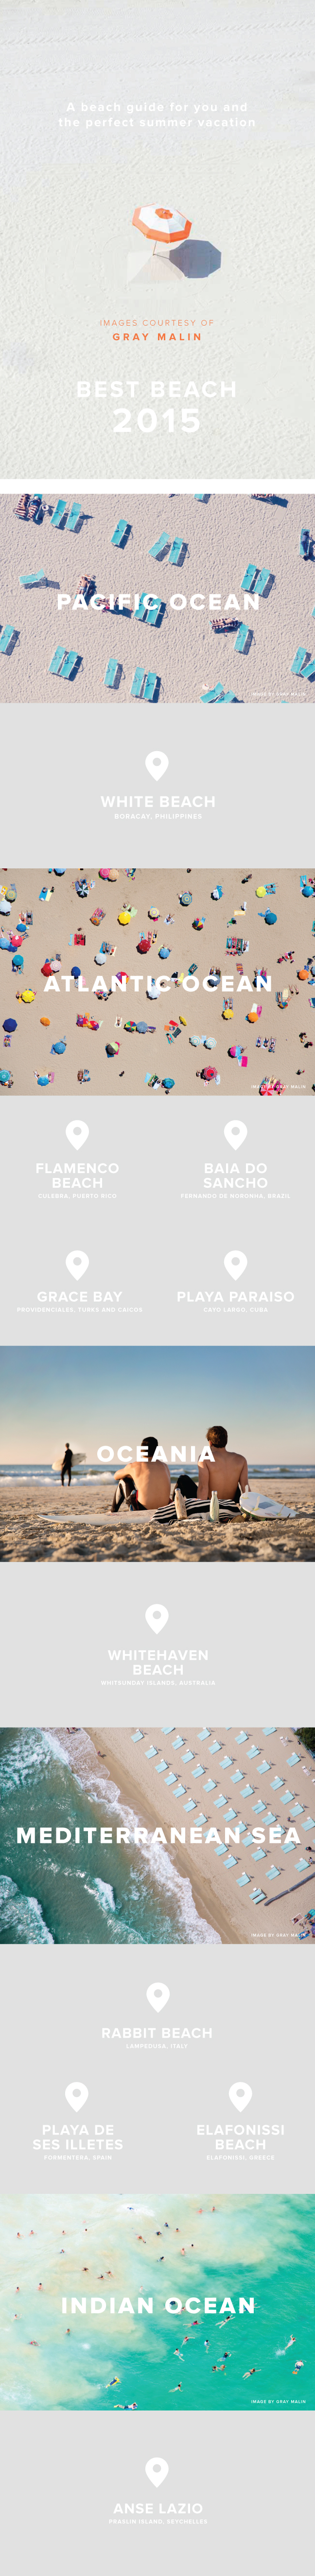 Beachinfographic_graymalin (1)